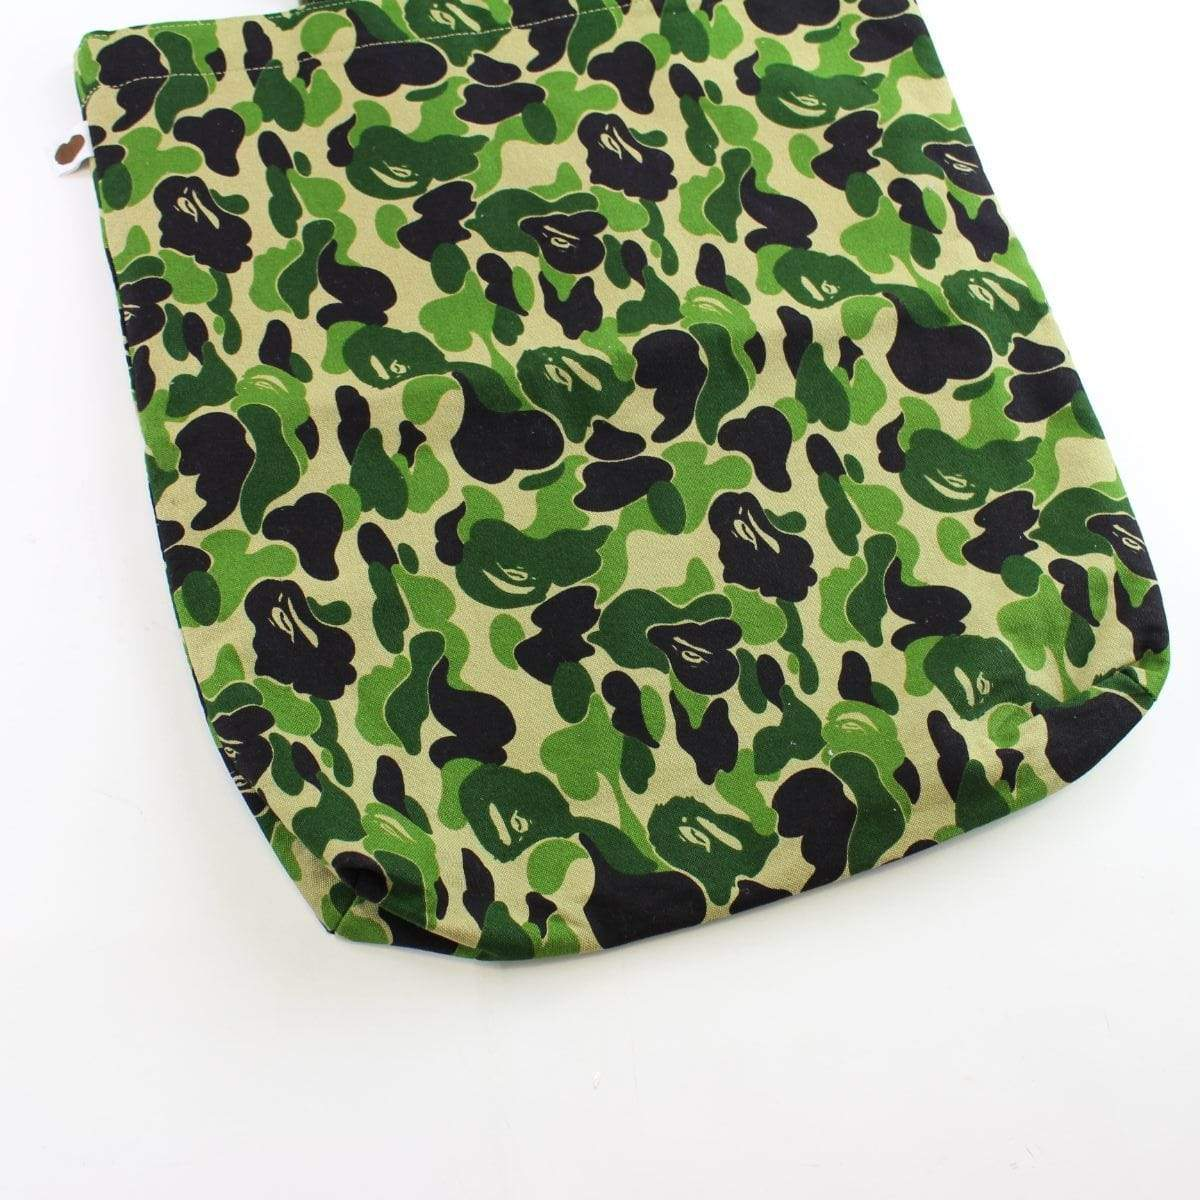 Bape ABC Green Camo Tote Bag - SaruGeneral